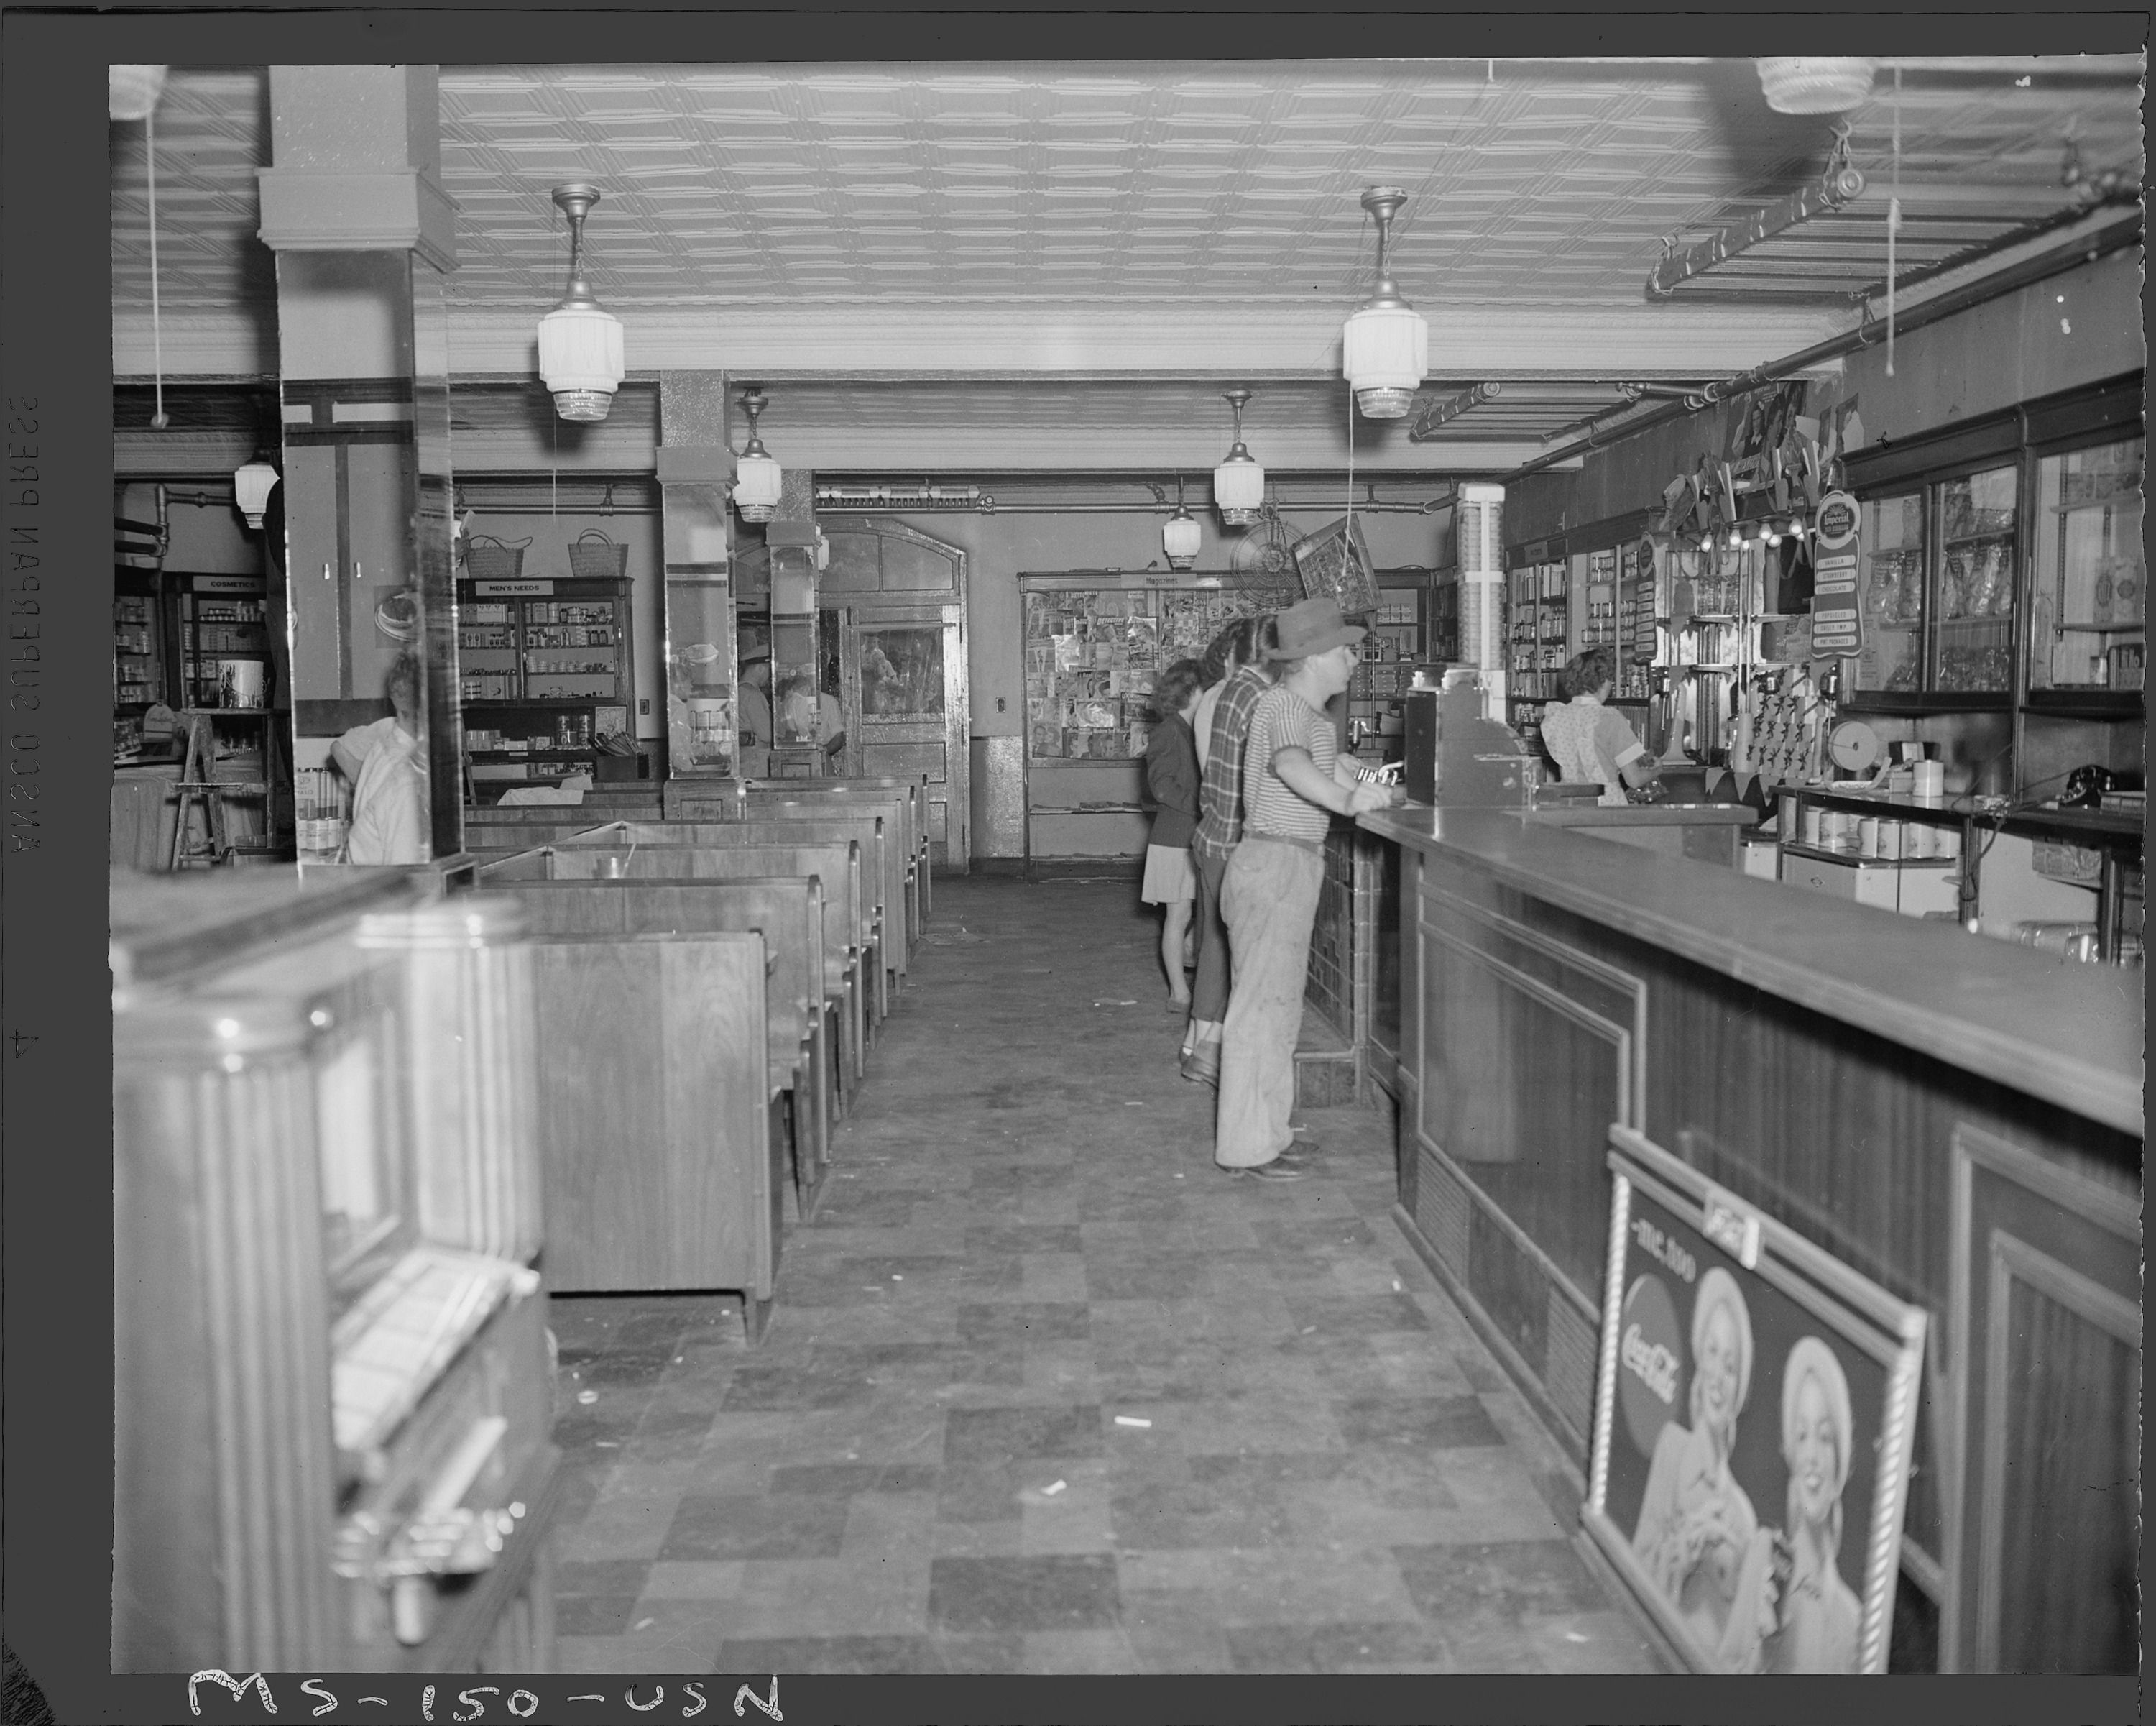 This Is Another Picture Of The Company Store Located In Grant Town